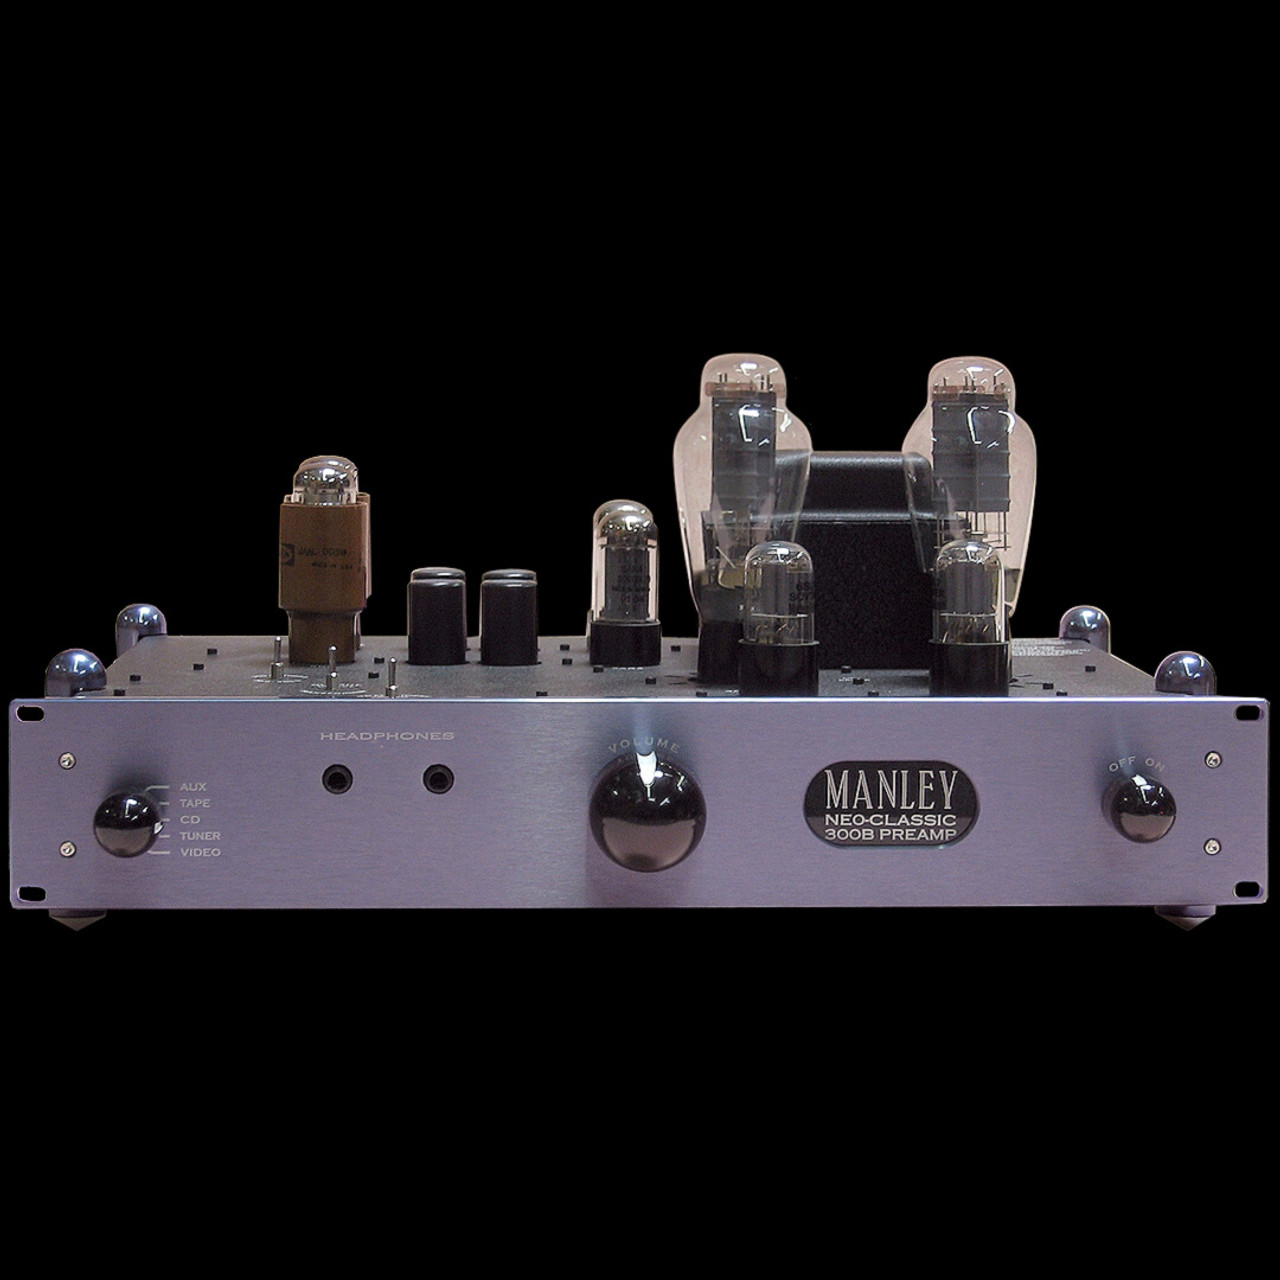 Manley Neo-Classic 300B RC Preamplifier